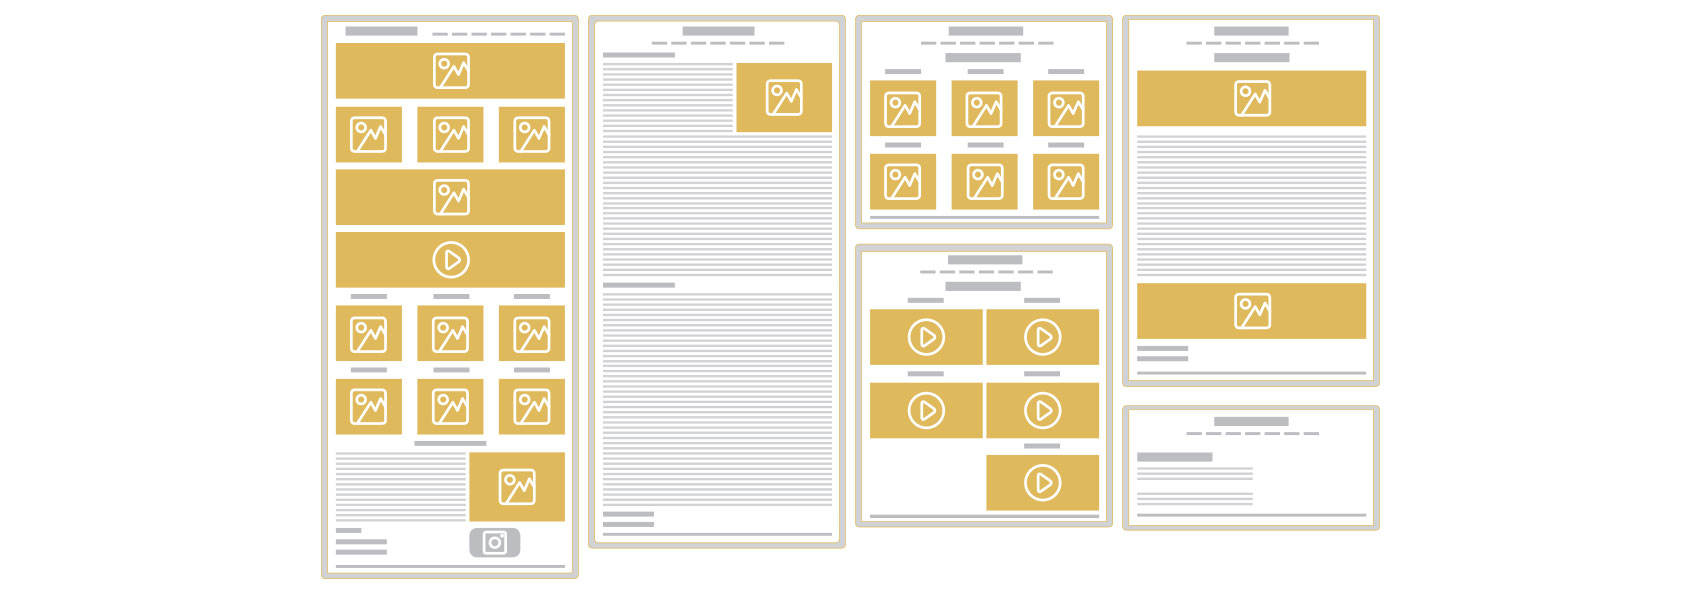 Wireframes detailing existing site structure